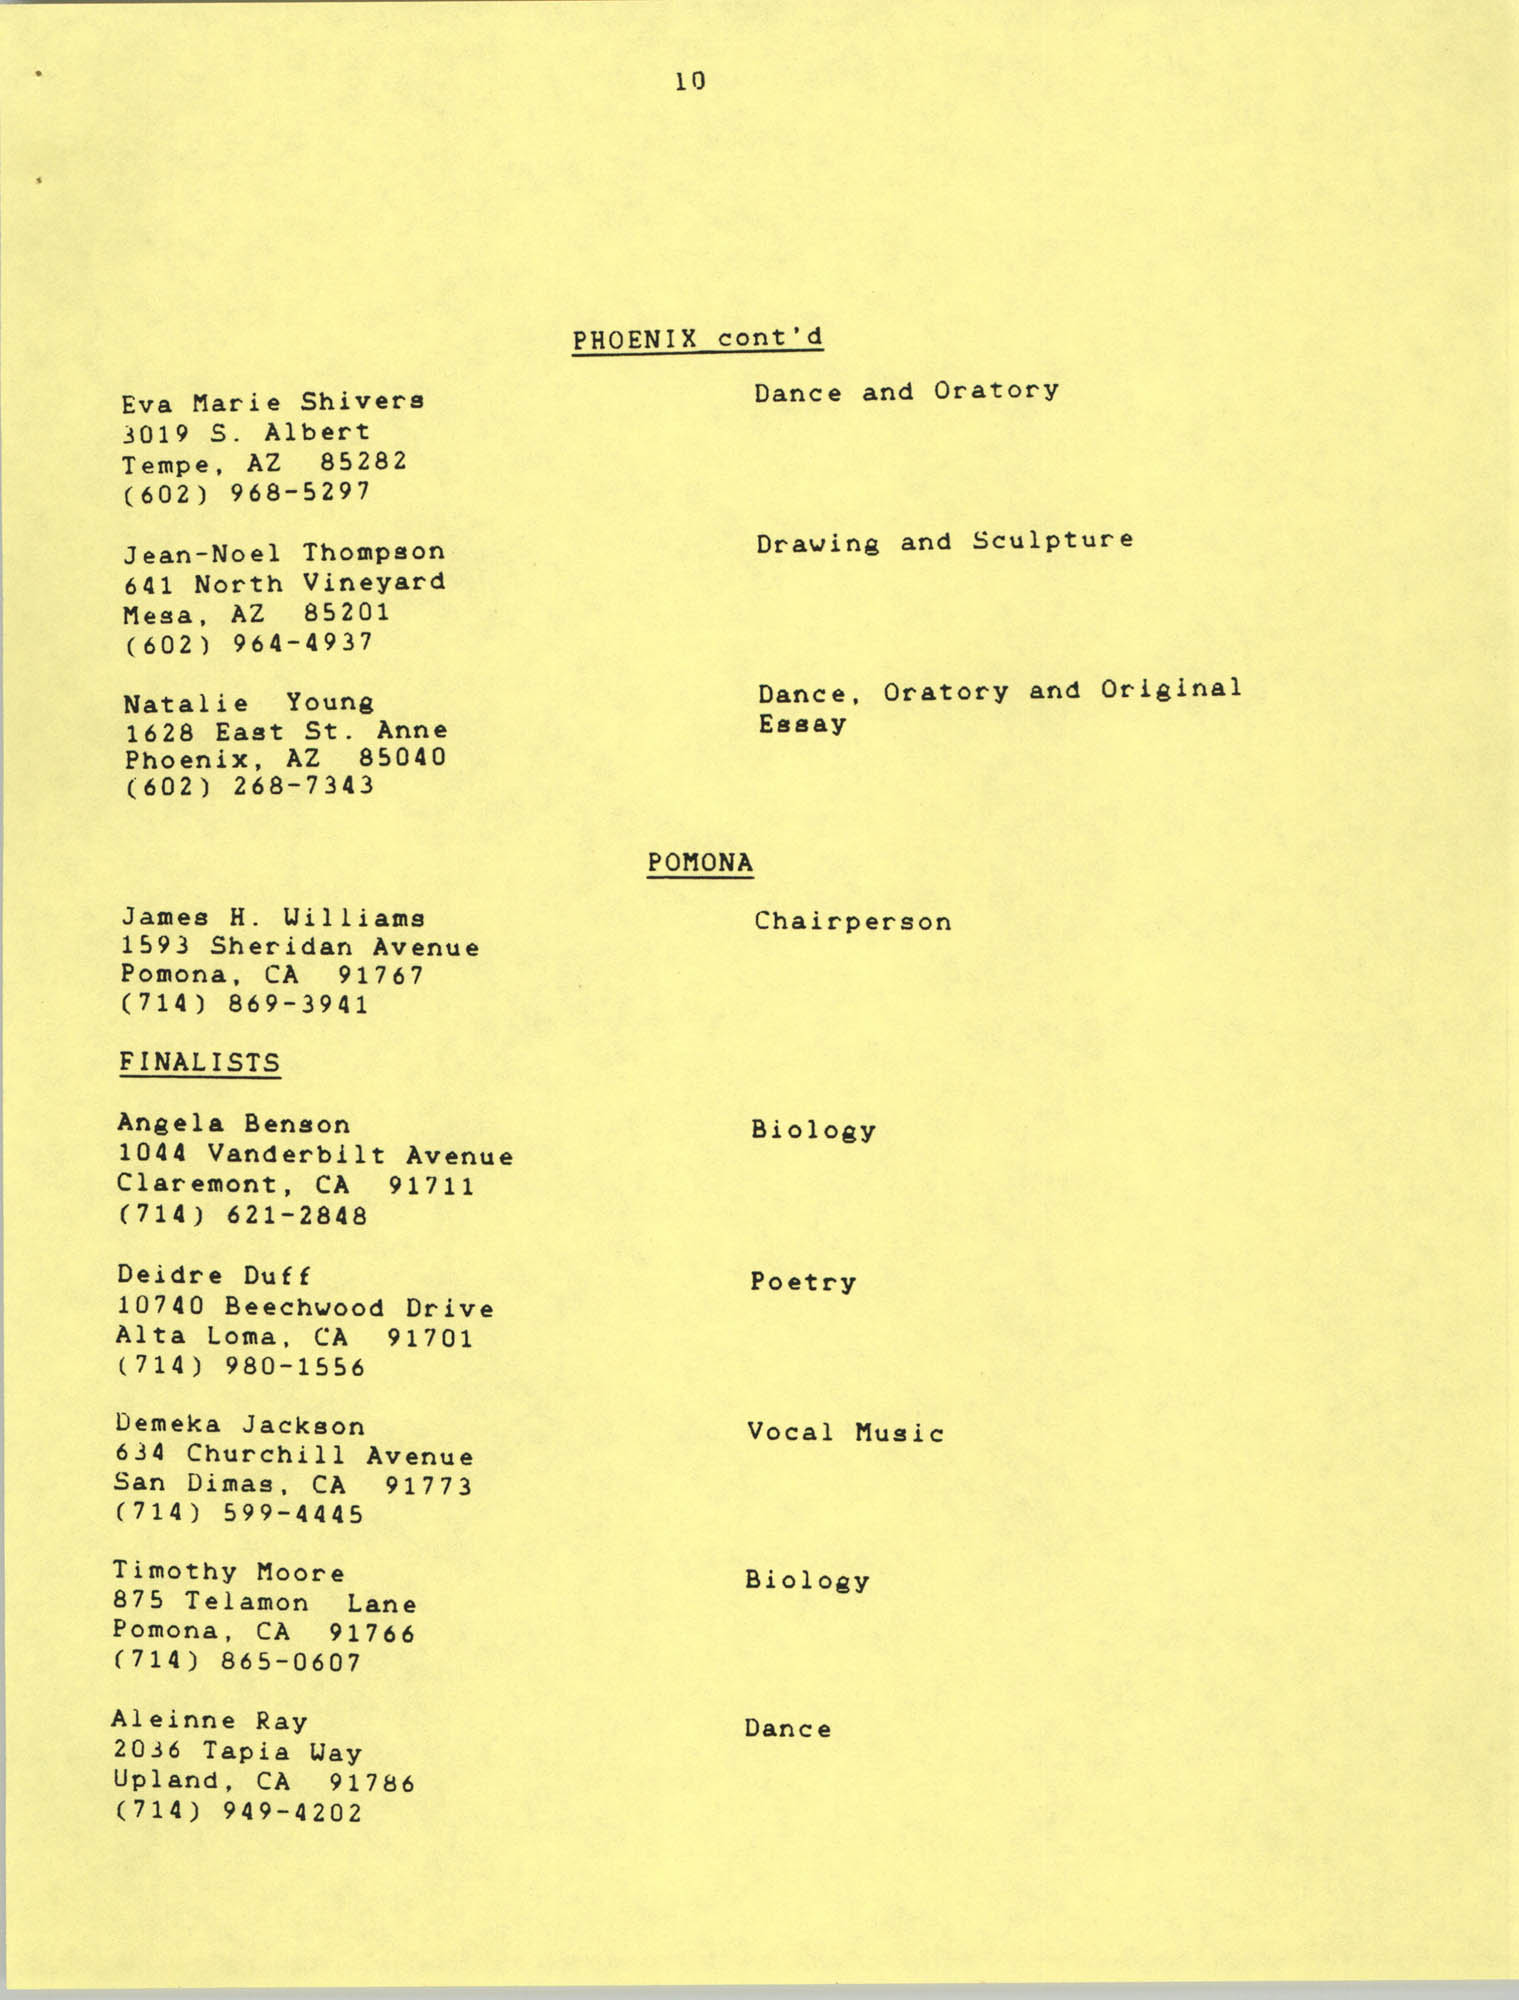 1987 Act-So Contestants, NAACP West Coast Region, Page 10